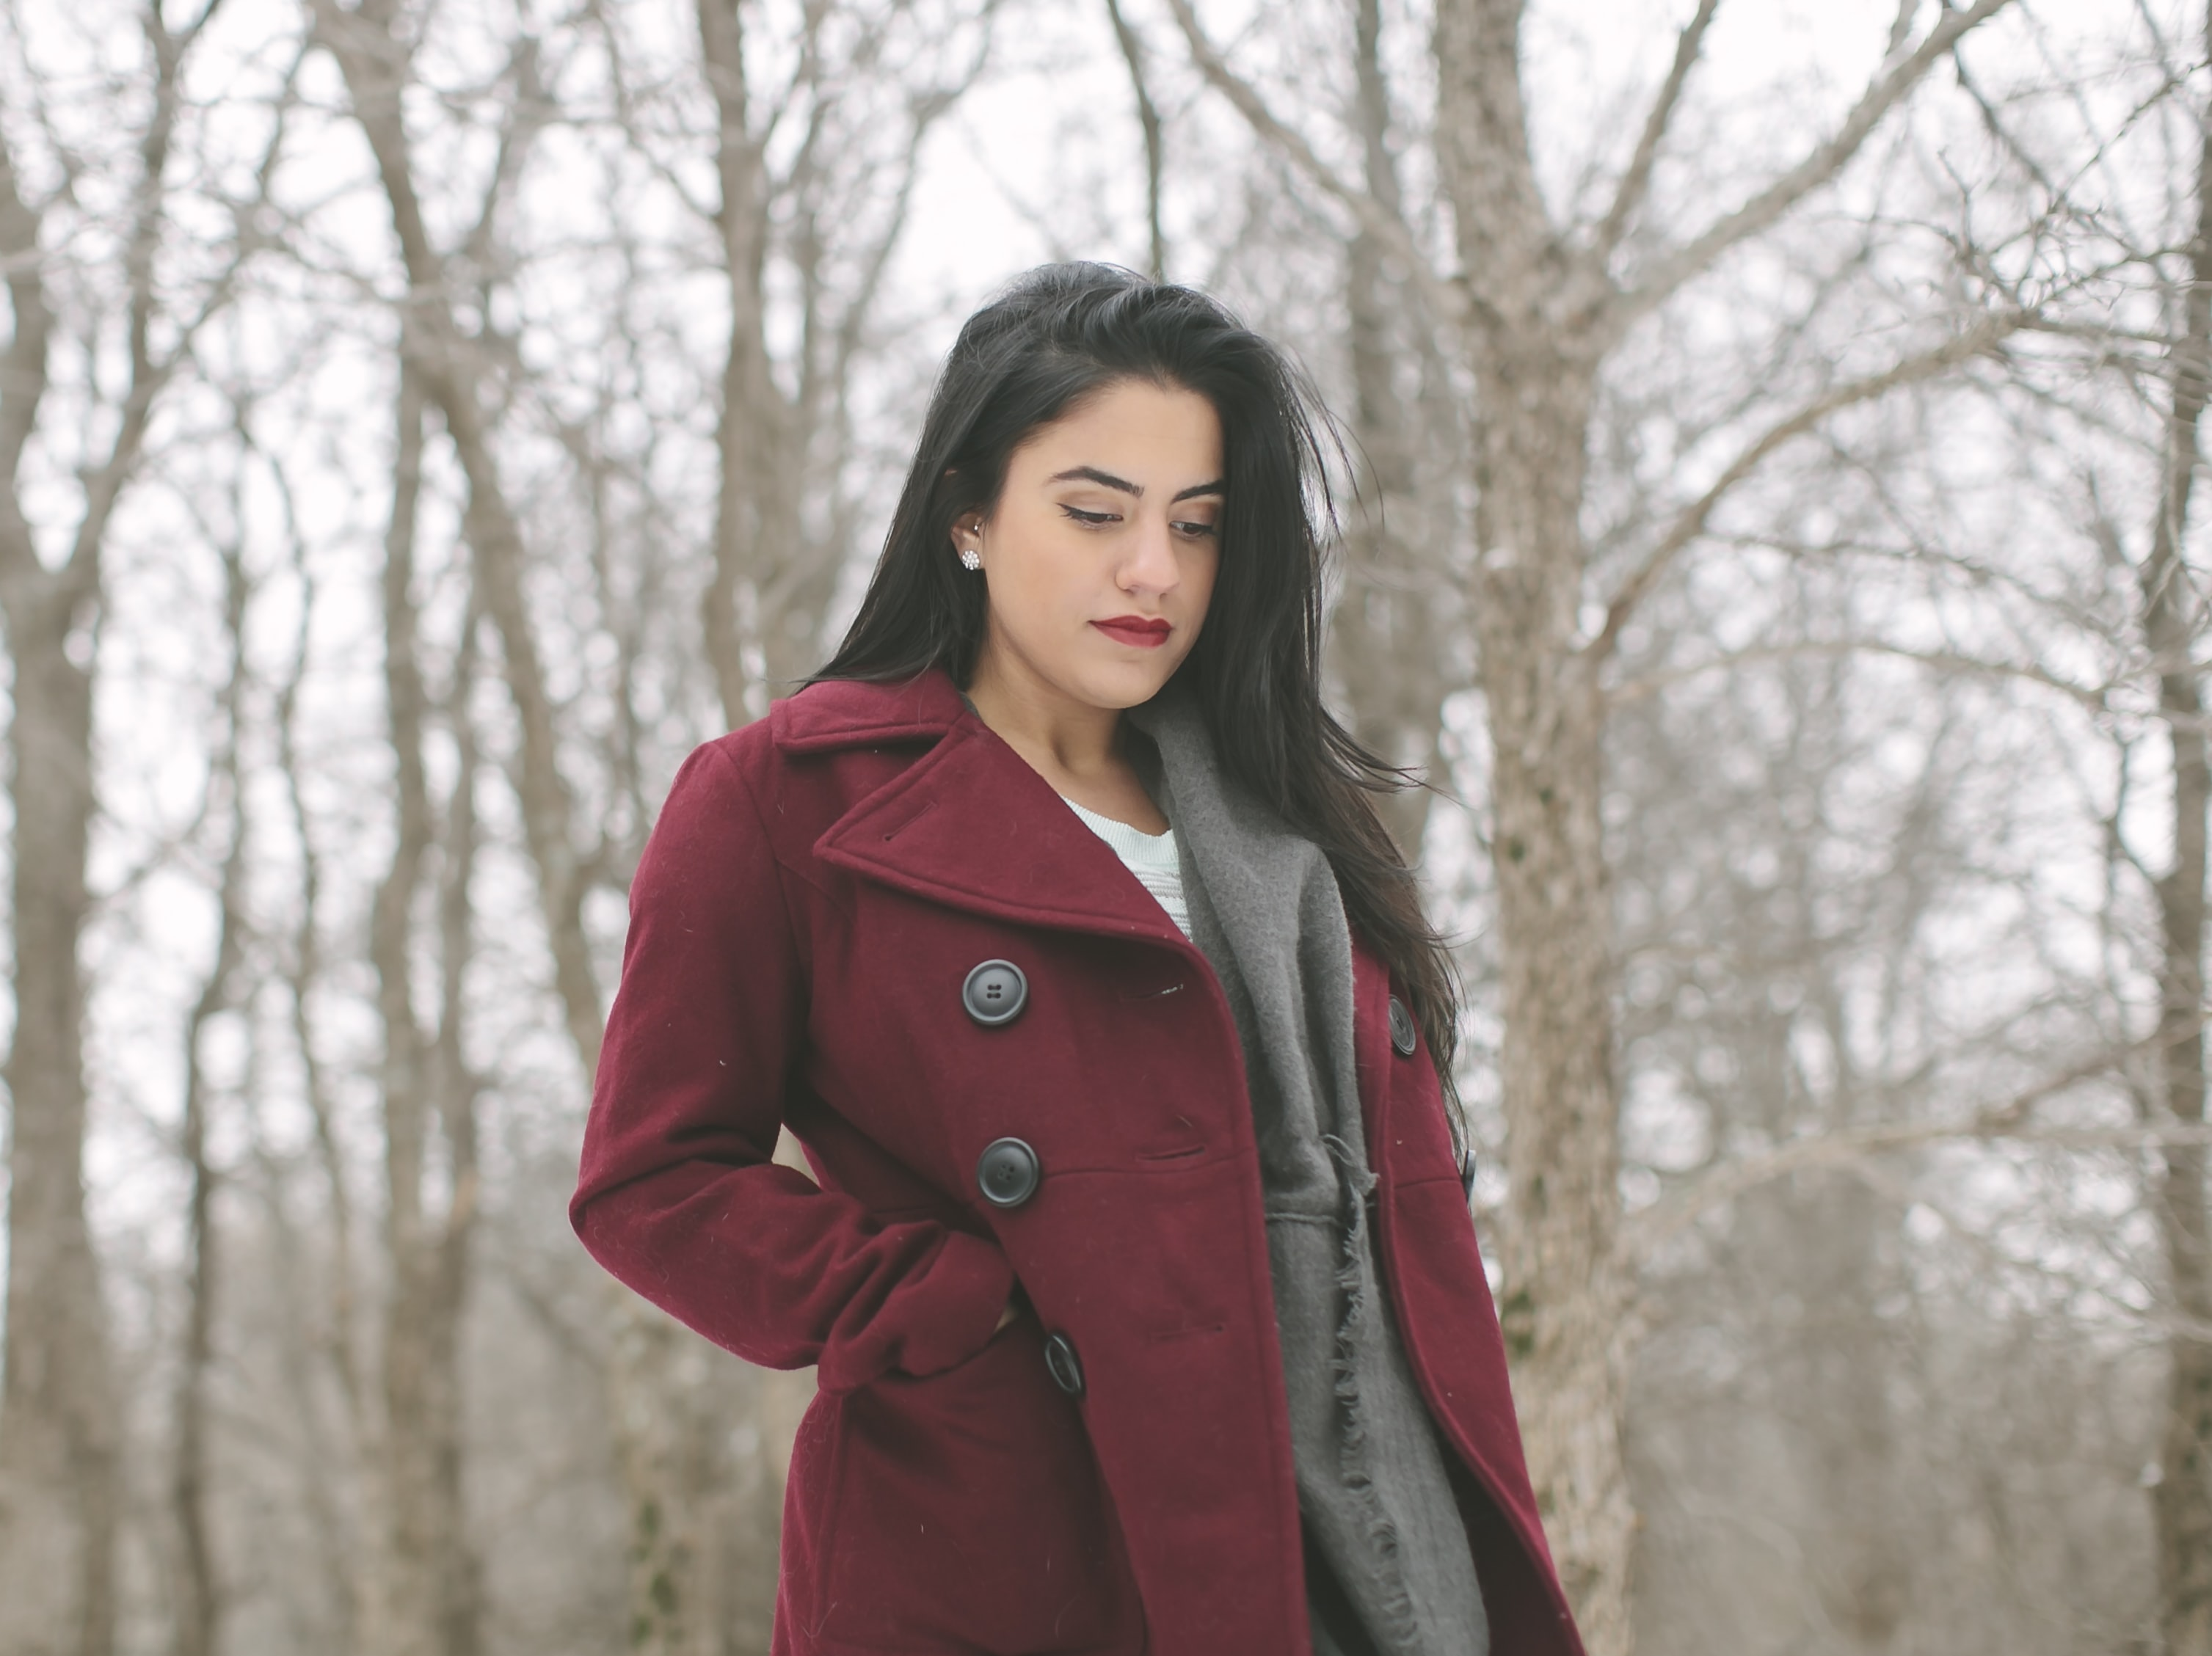 woman wearing red coat looking down